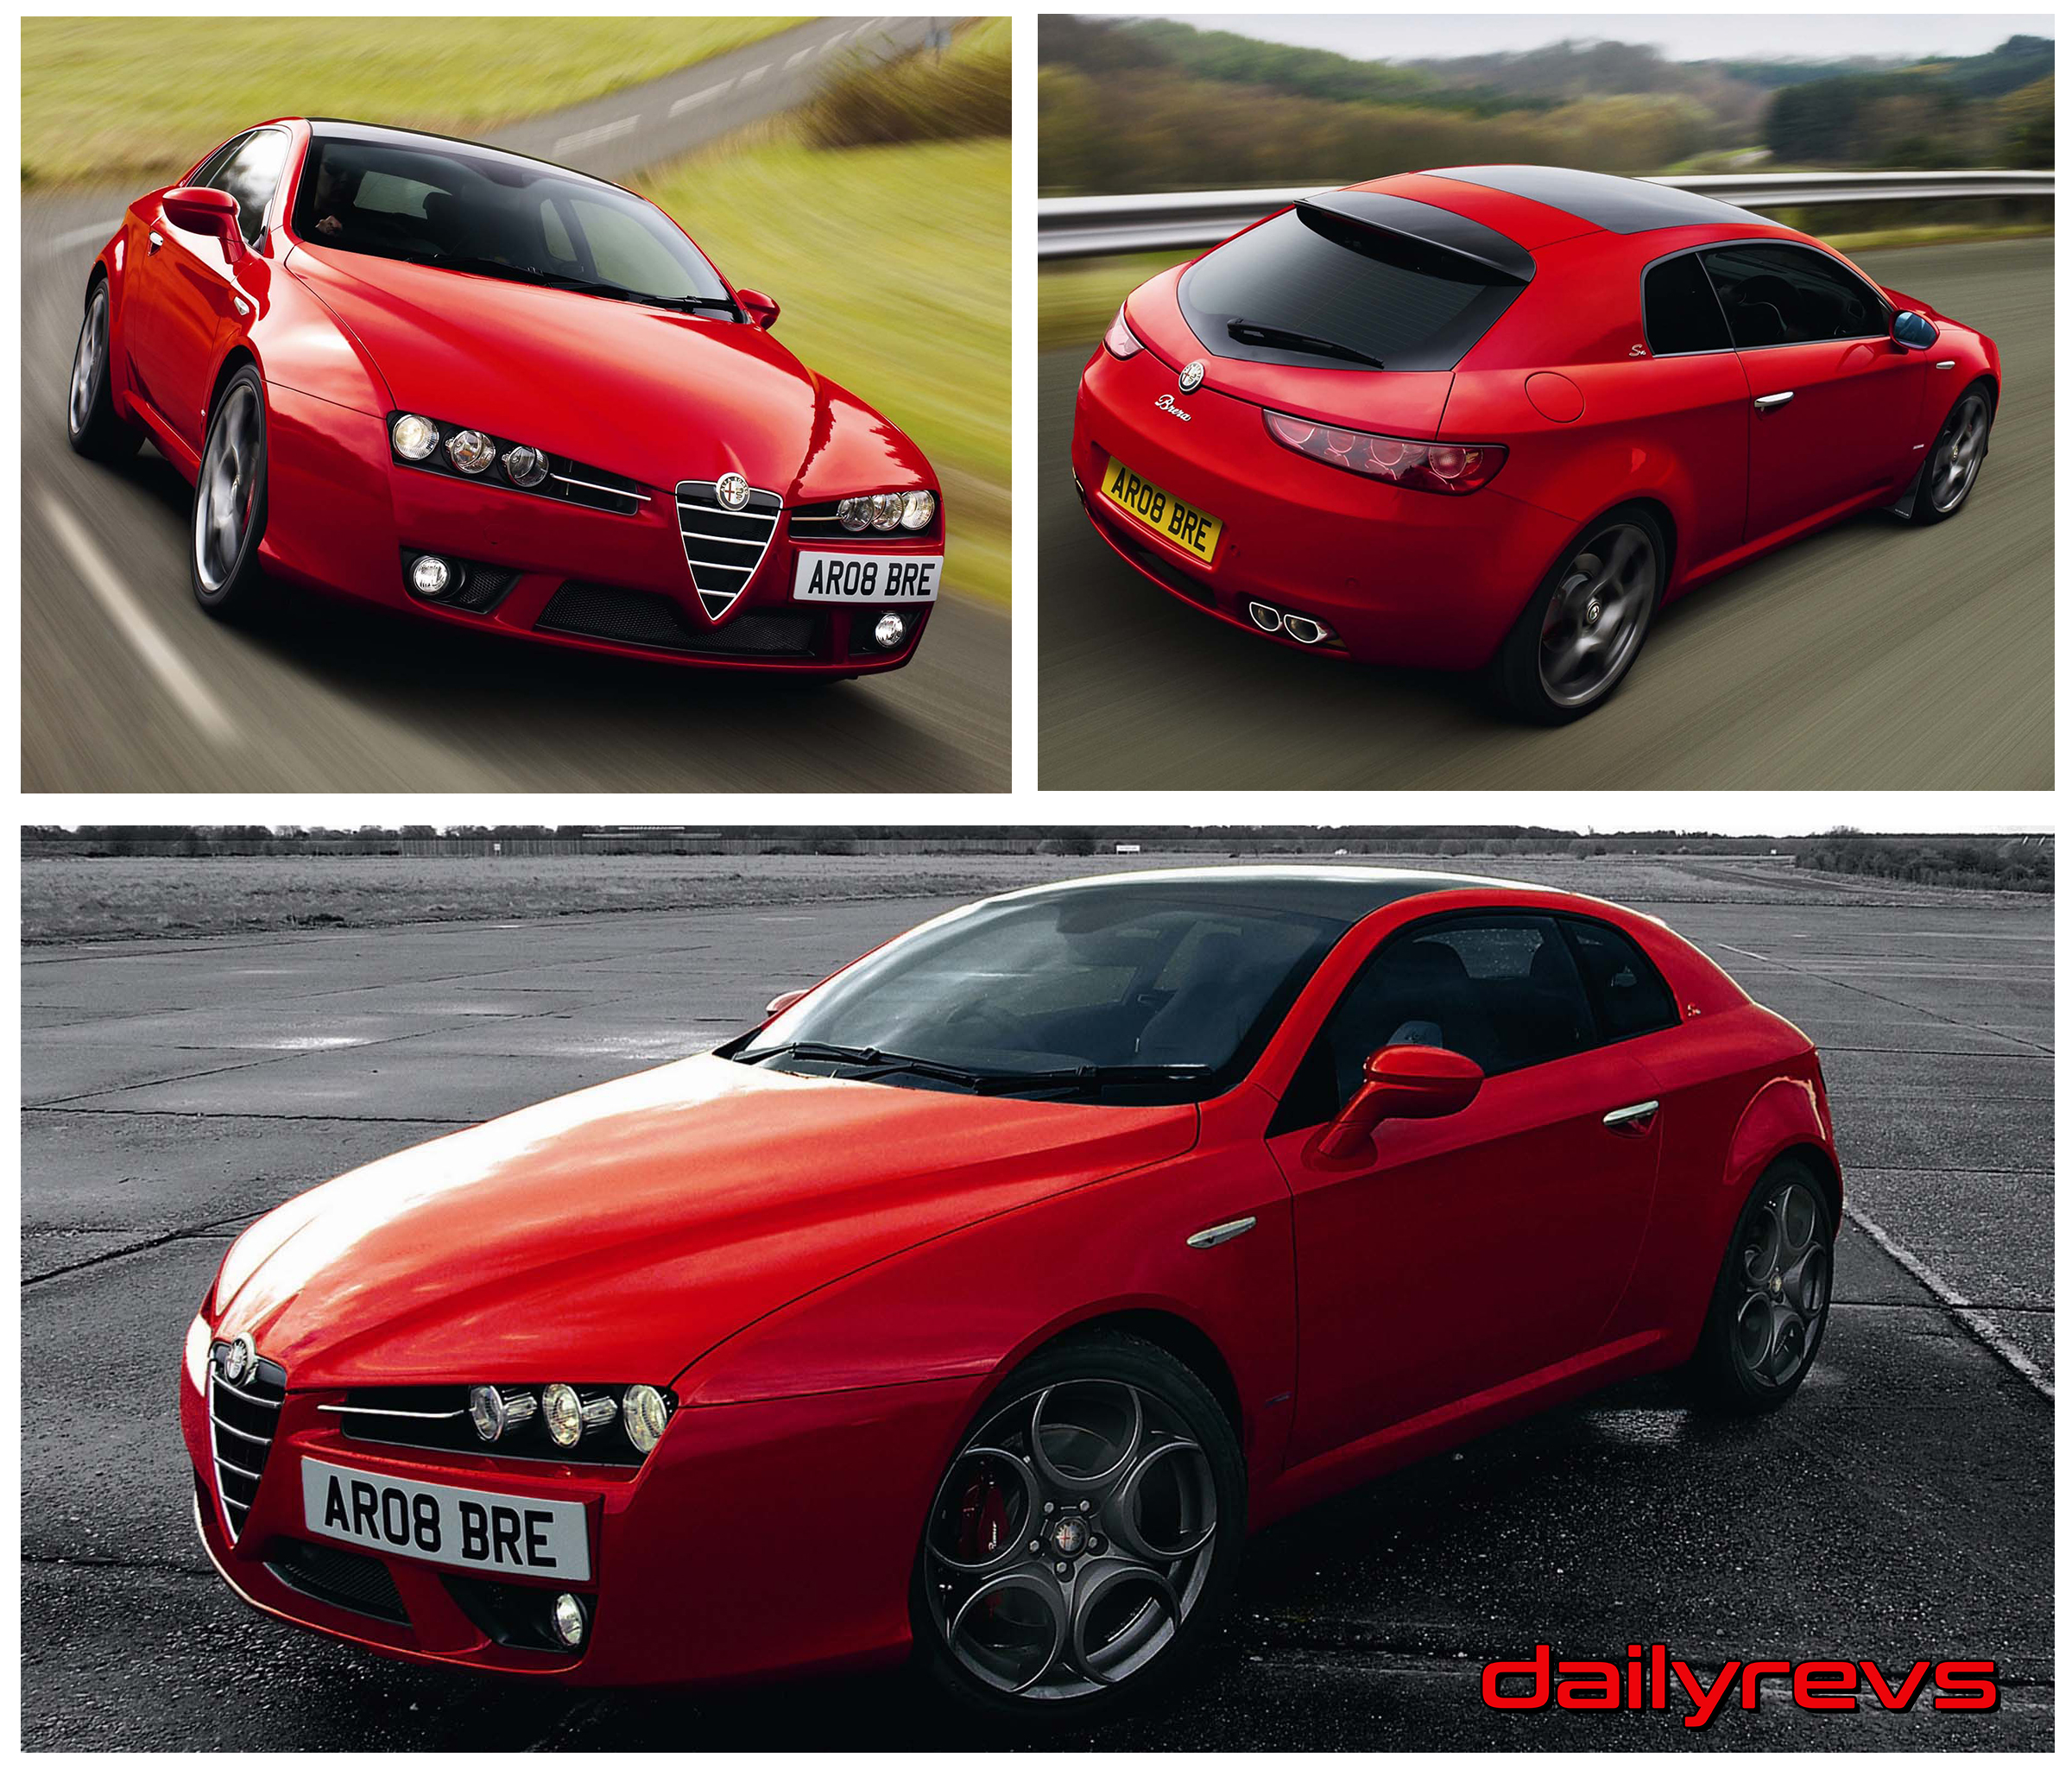 2009 Alfa Romeo Brera S Hd Pictures Videos Specs Information Dailyrevs